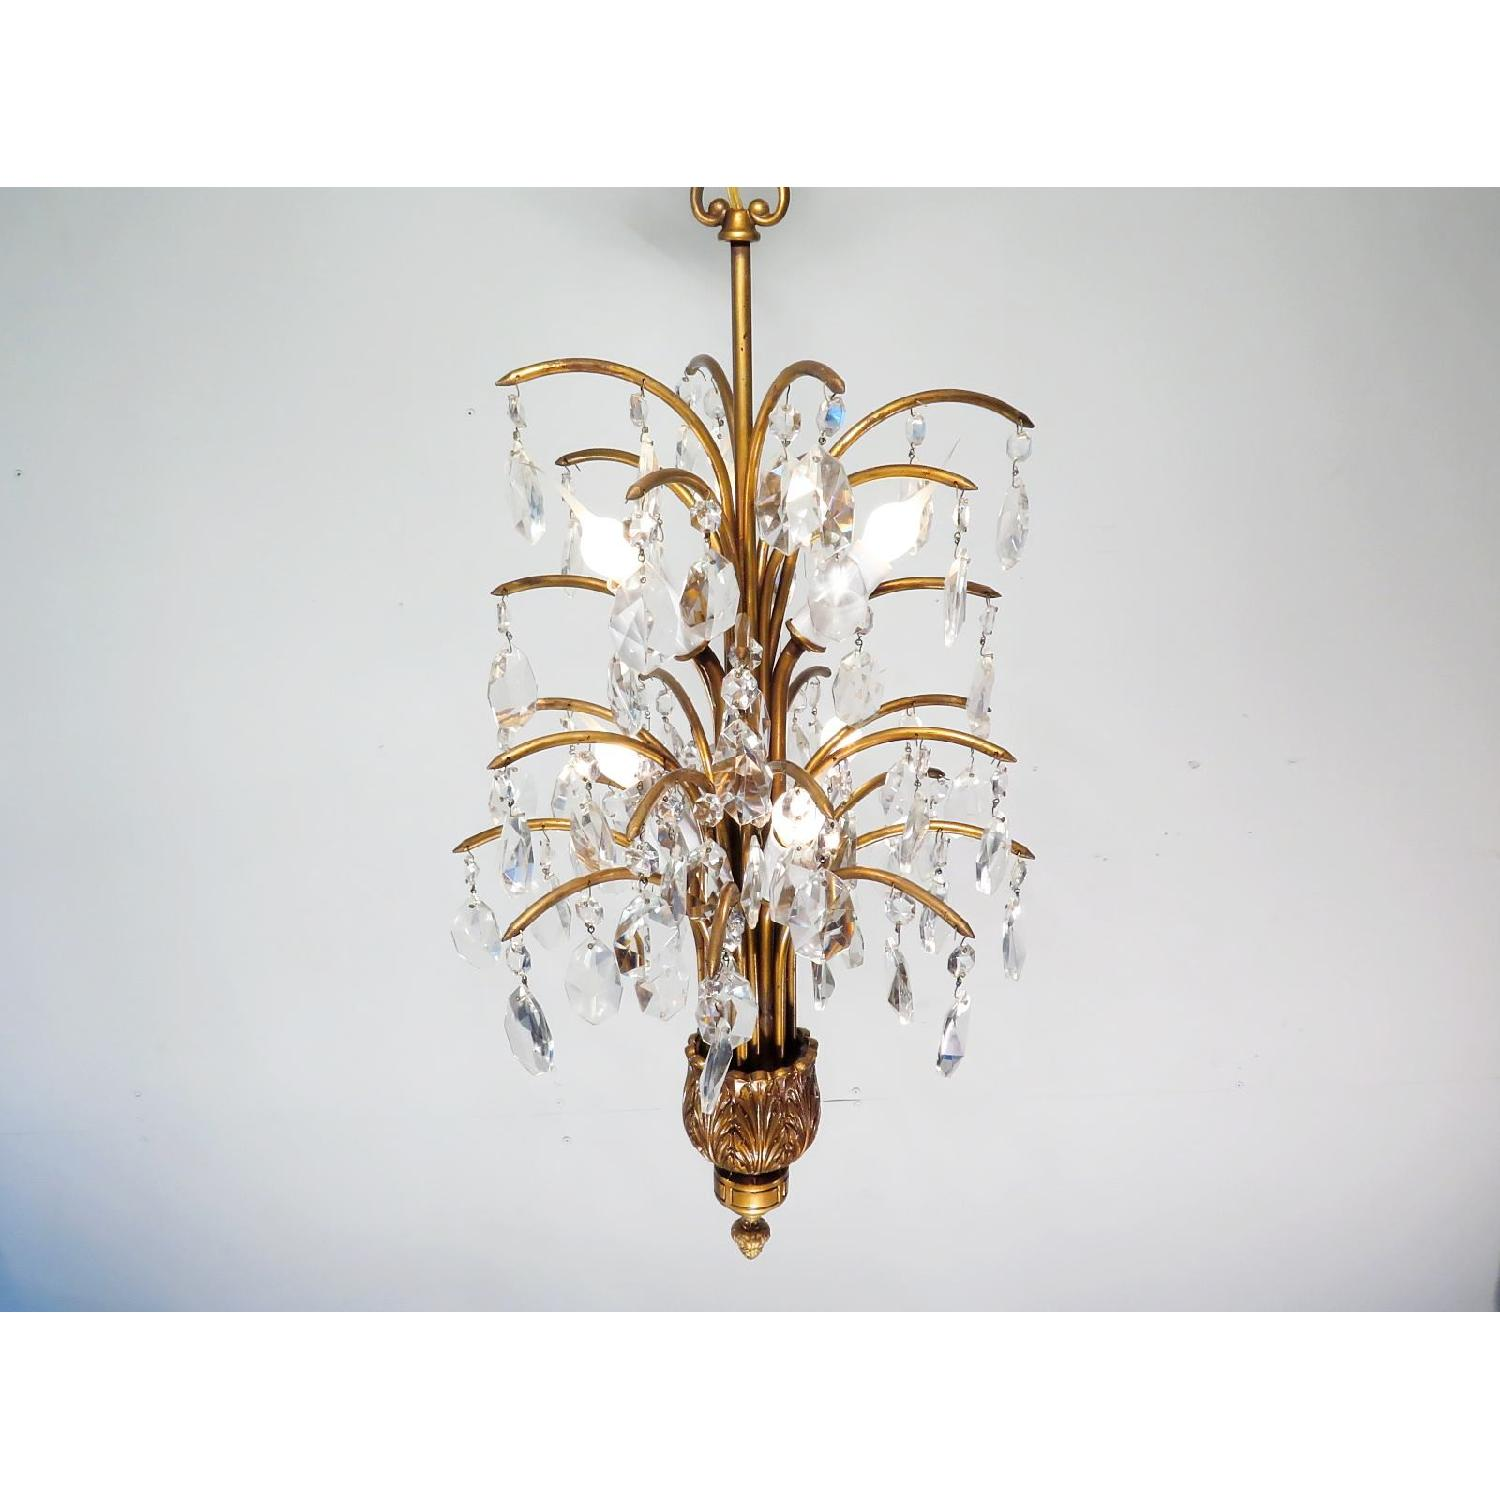 Antique Vintage Mid-Century Chandelier w/ Spray Crystals - 3 Available - image-2